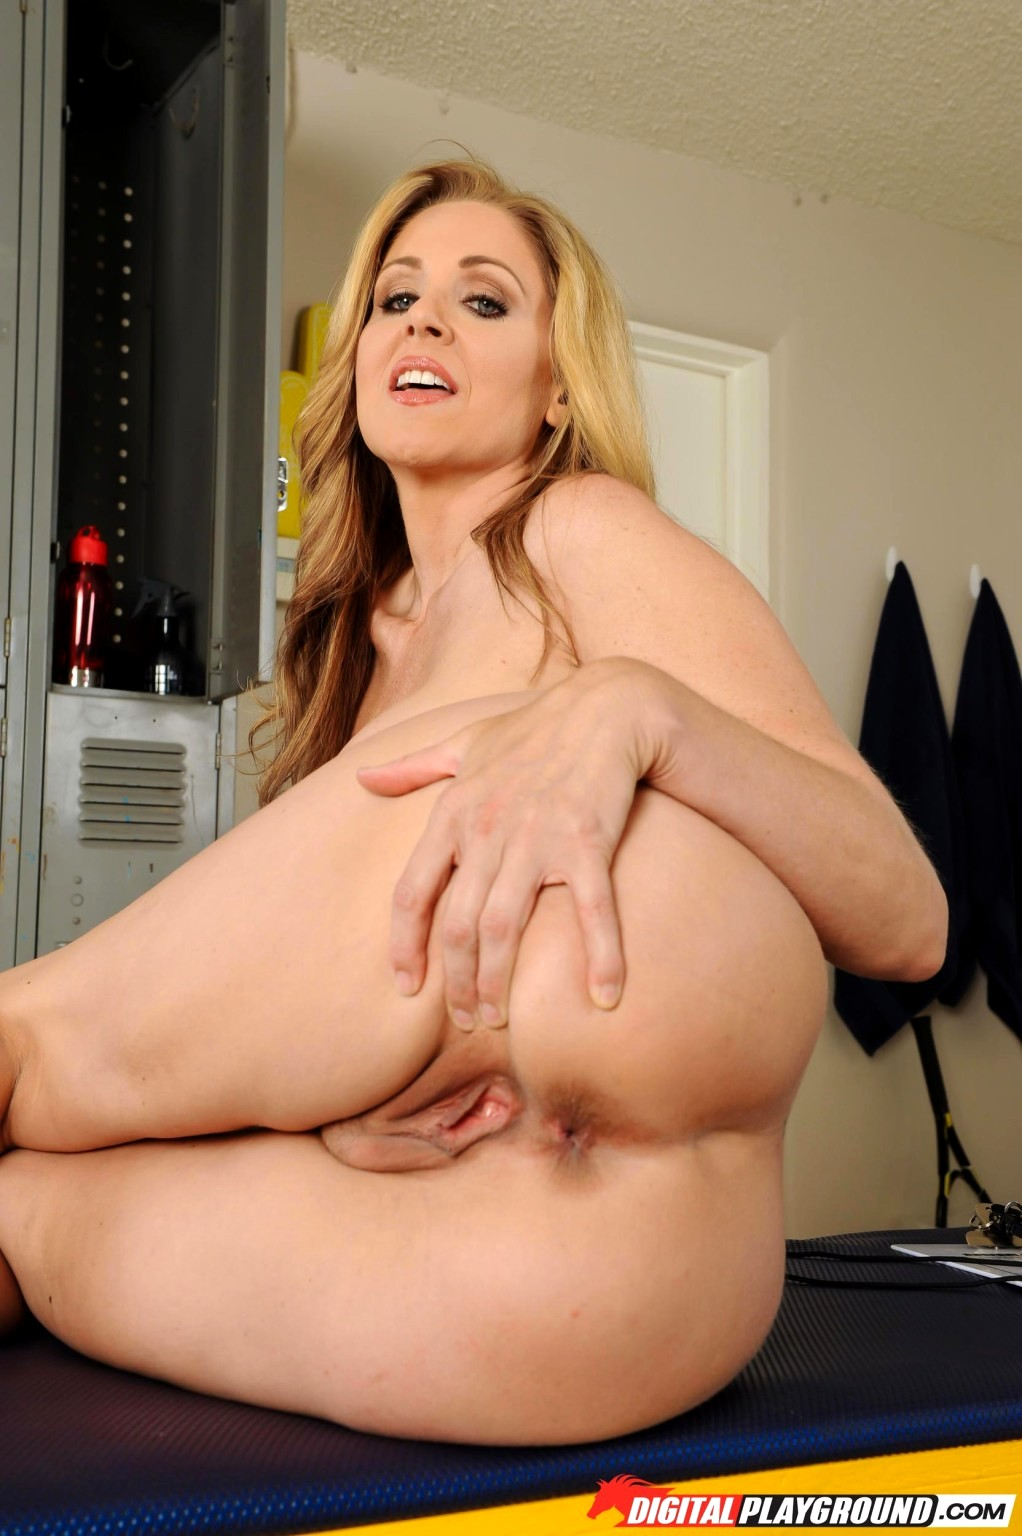 Julia ann free gallery